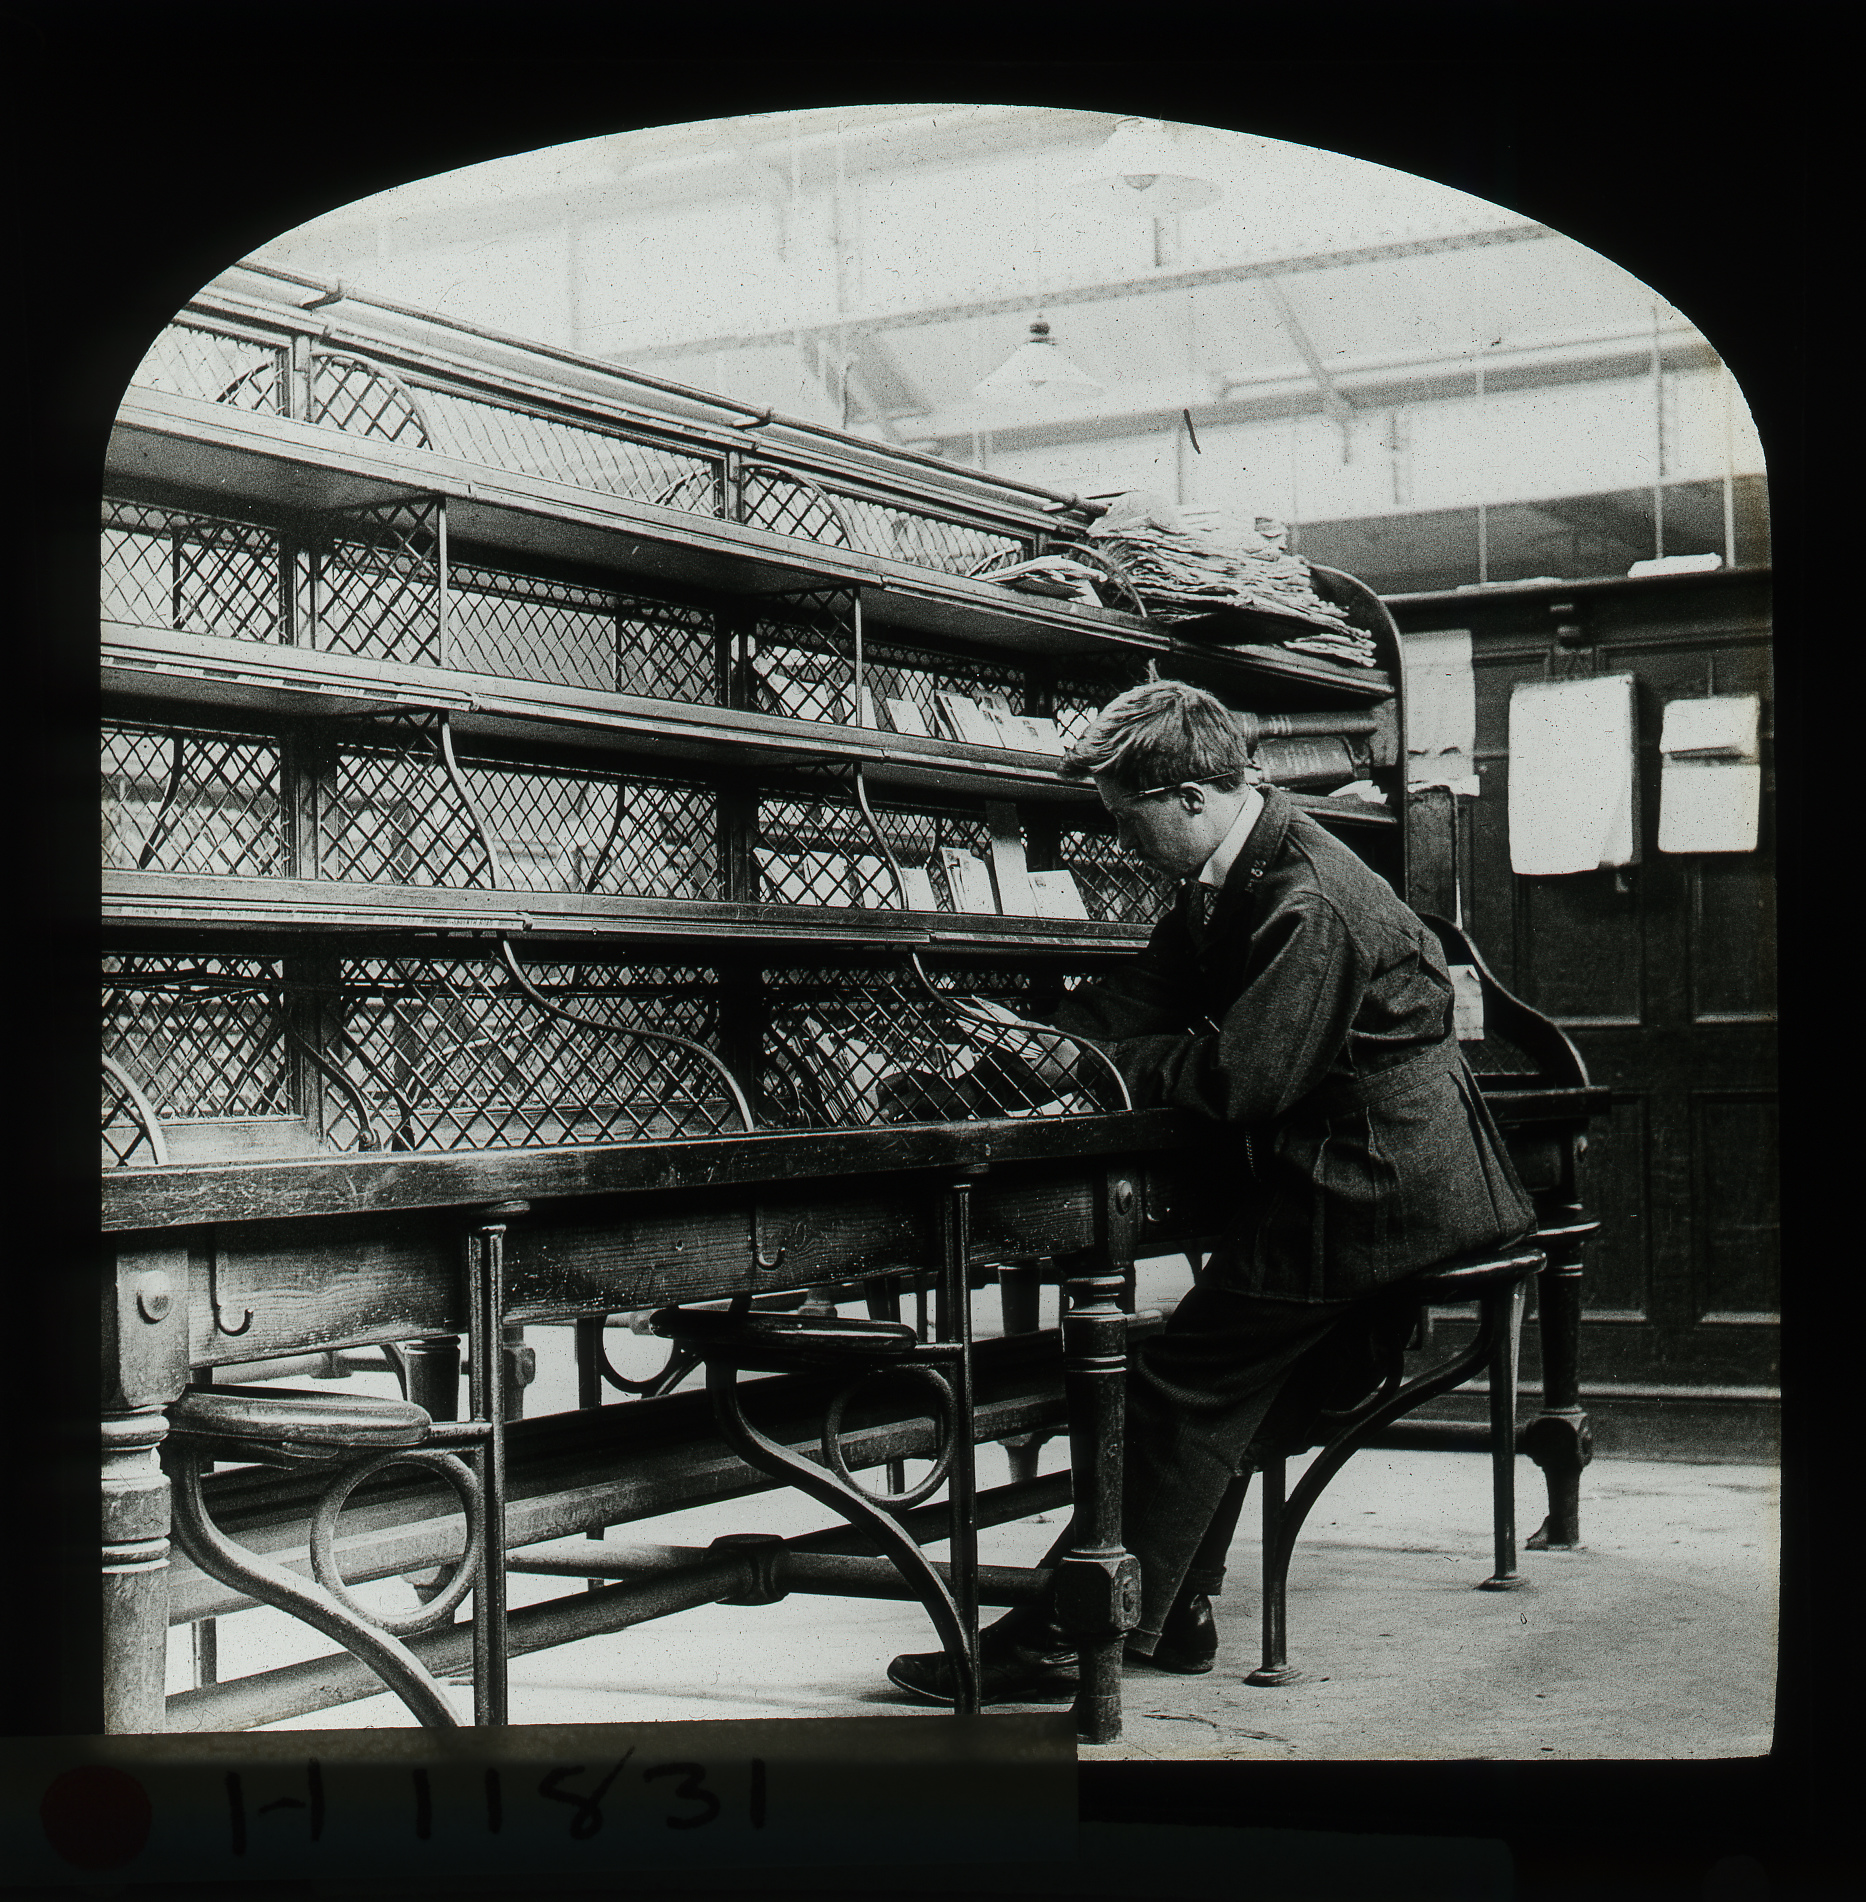 Black and white image of a men working at a desk with shelves above him.